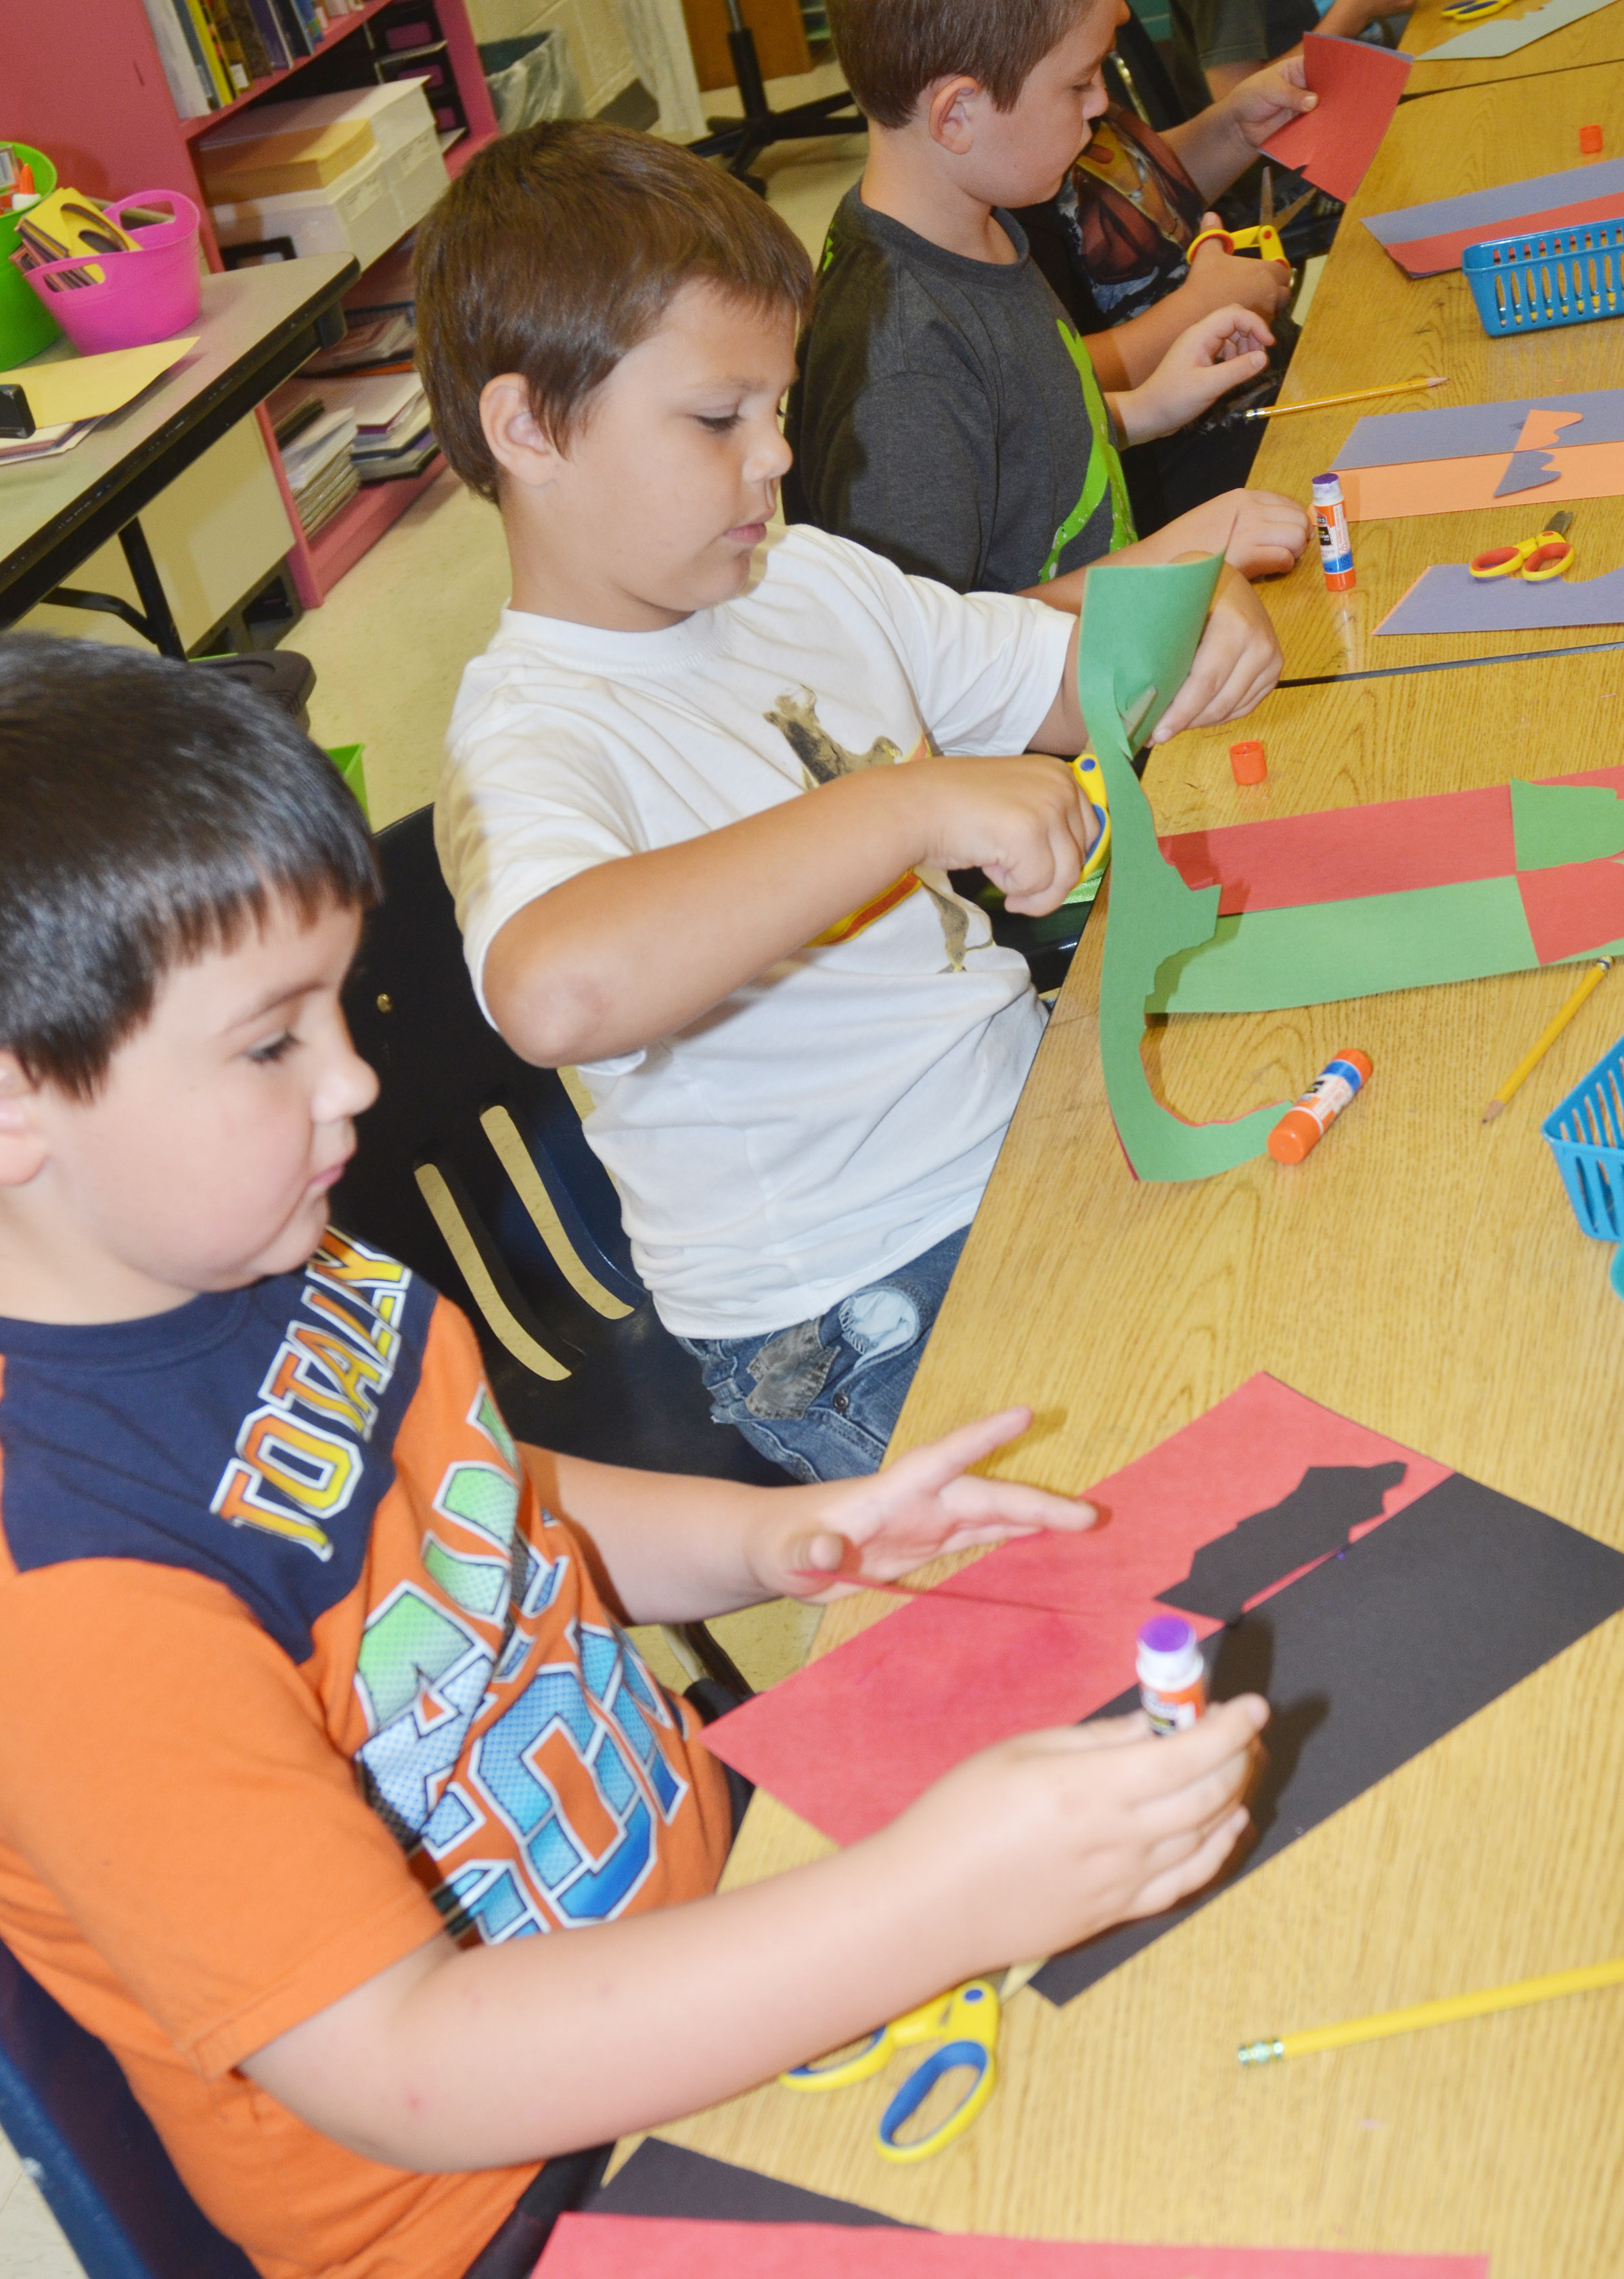 CES second-graders Braxton Giles-Osinger, at left, and Jaxson Hunt glue their free form shapes.